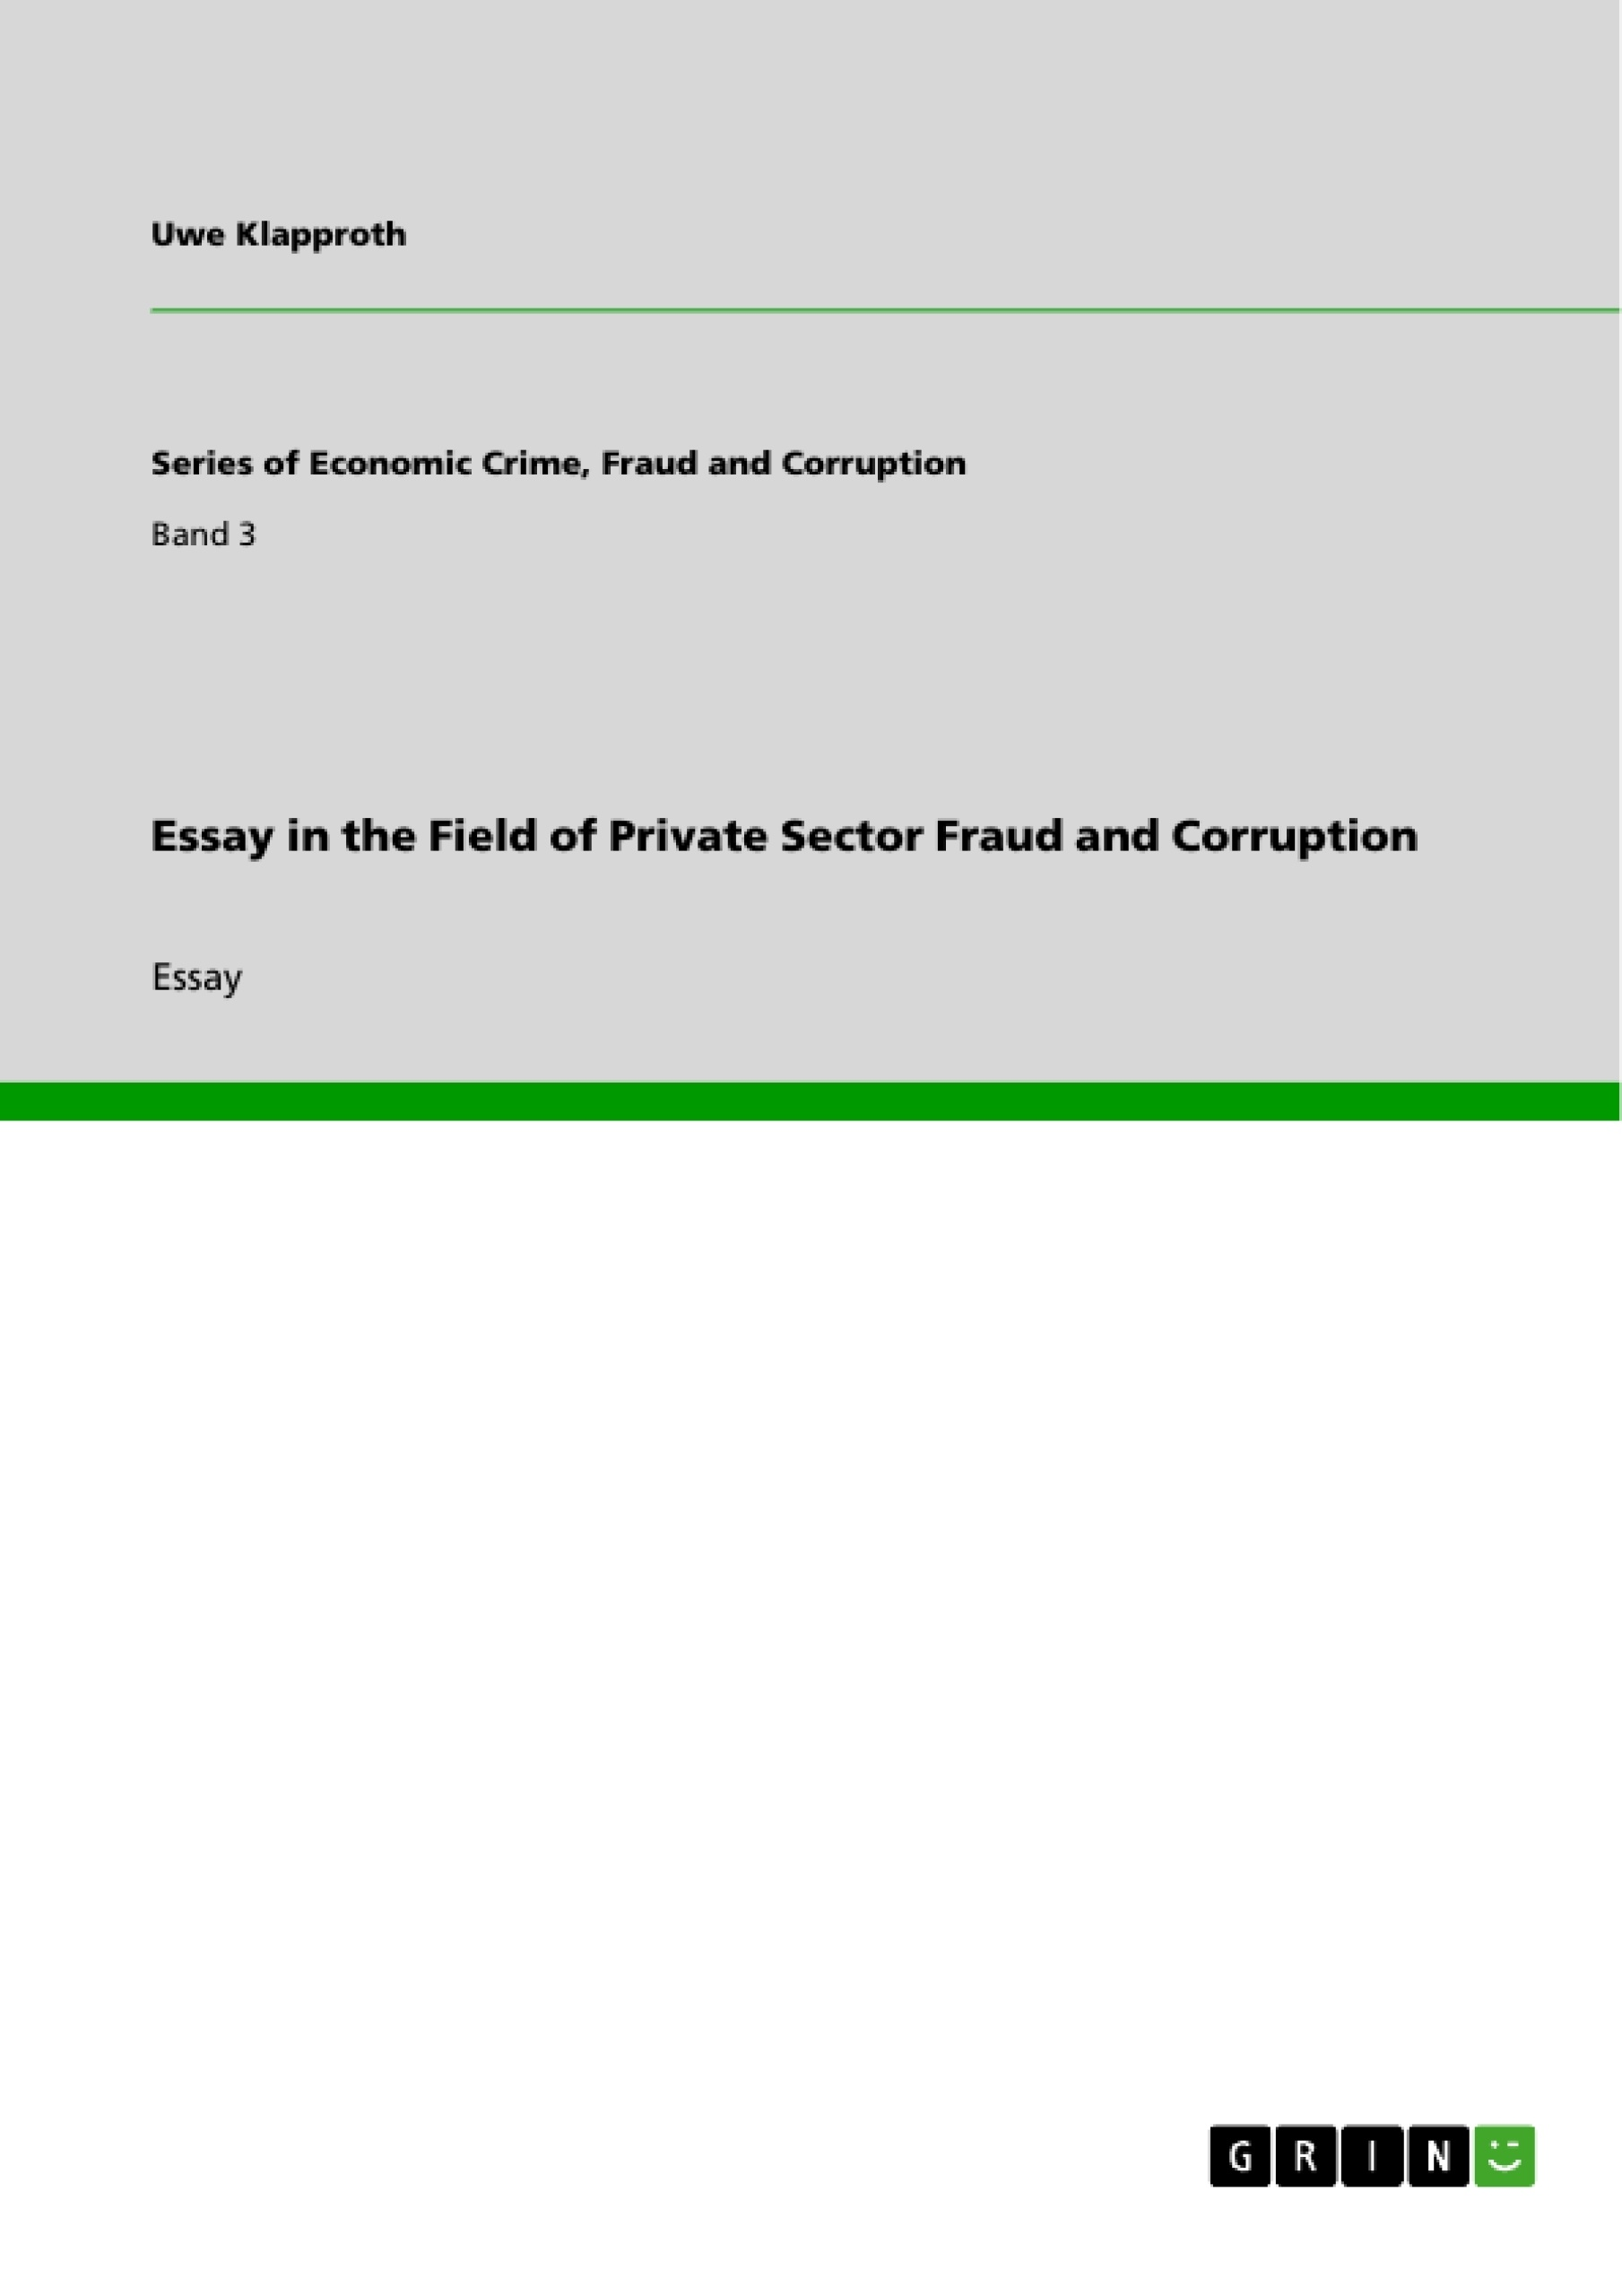 research propoasal on corruption and fraud